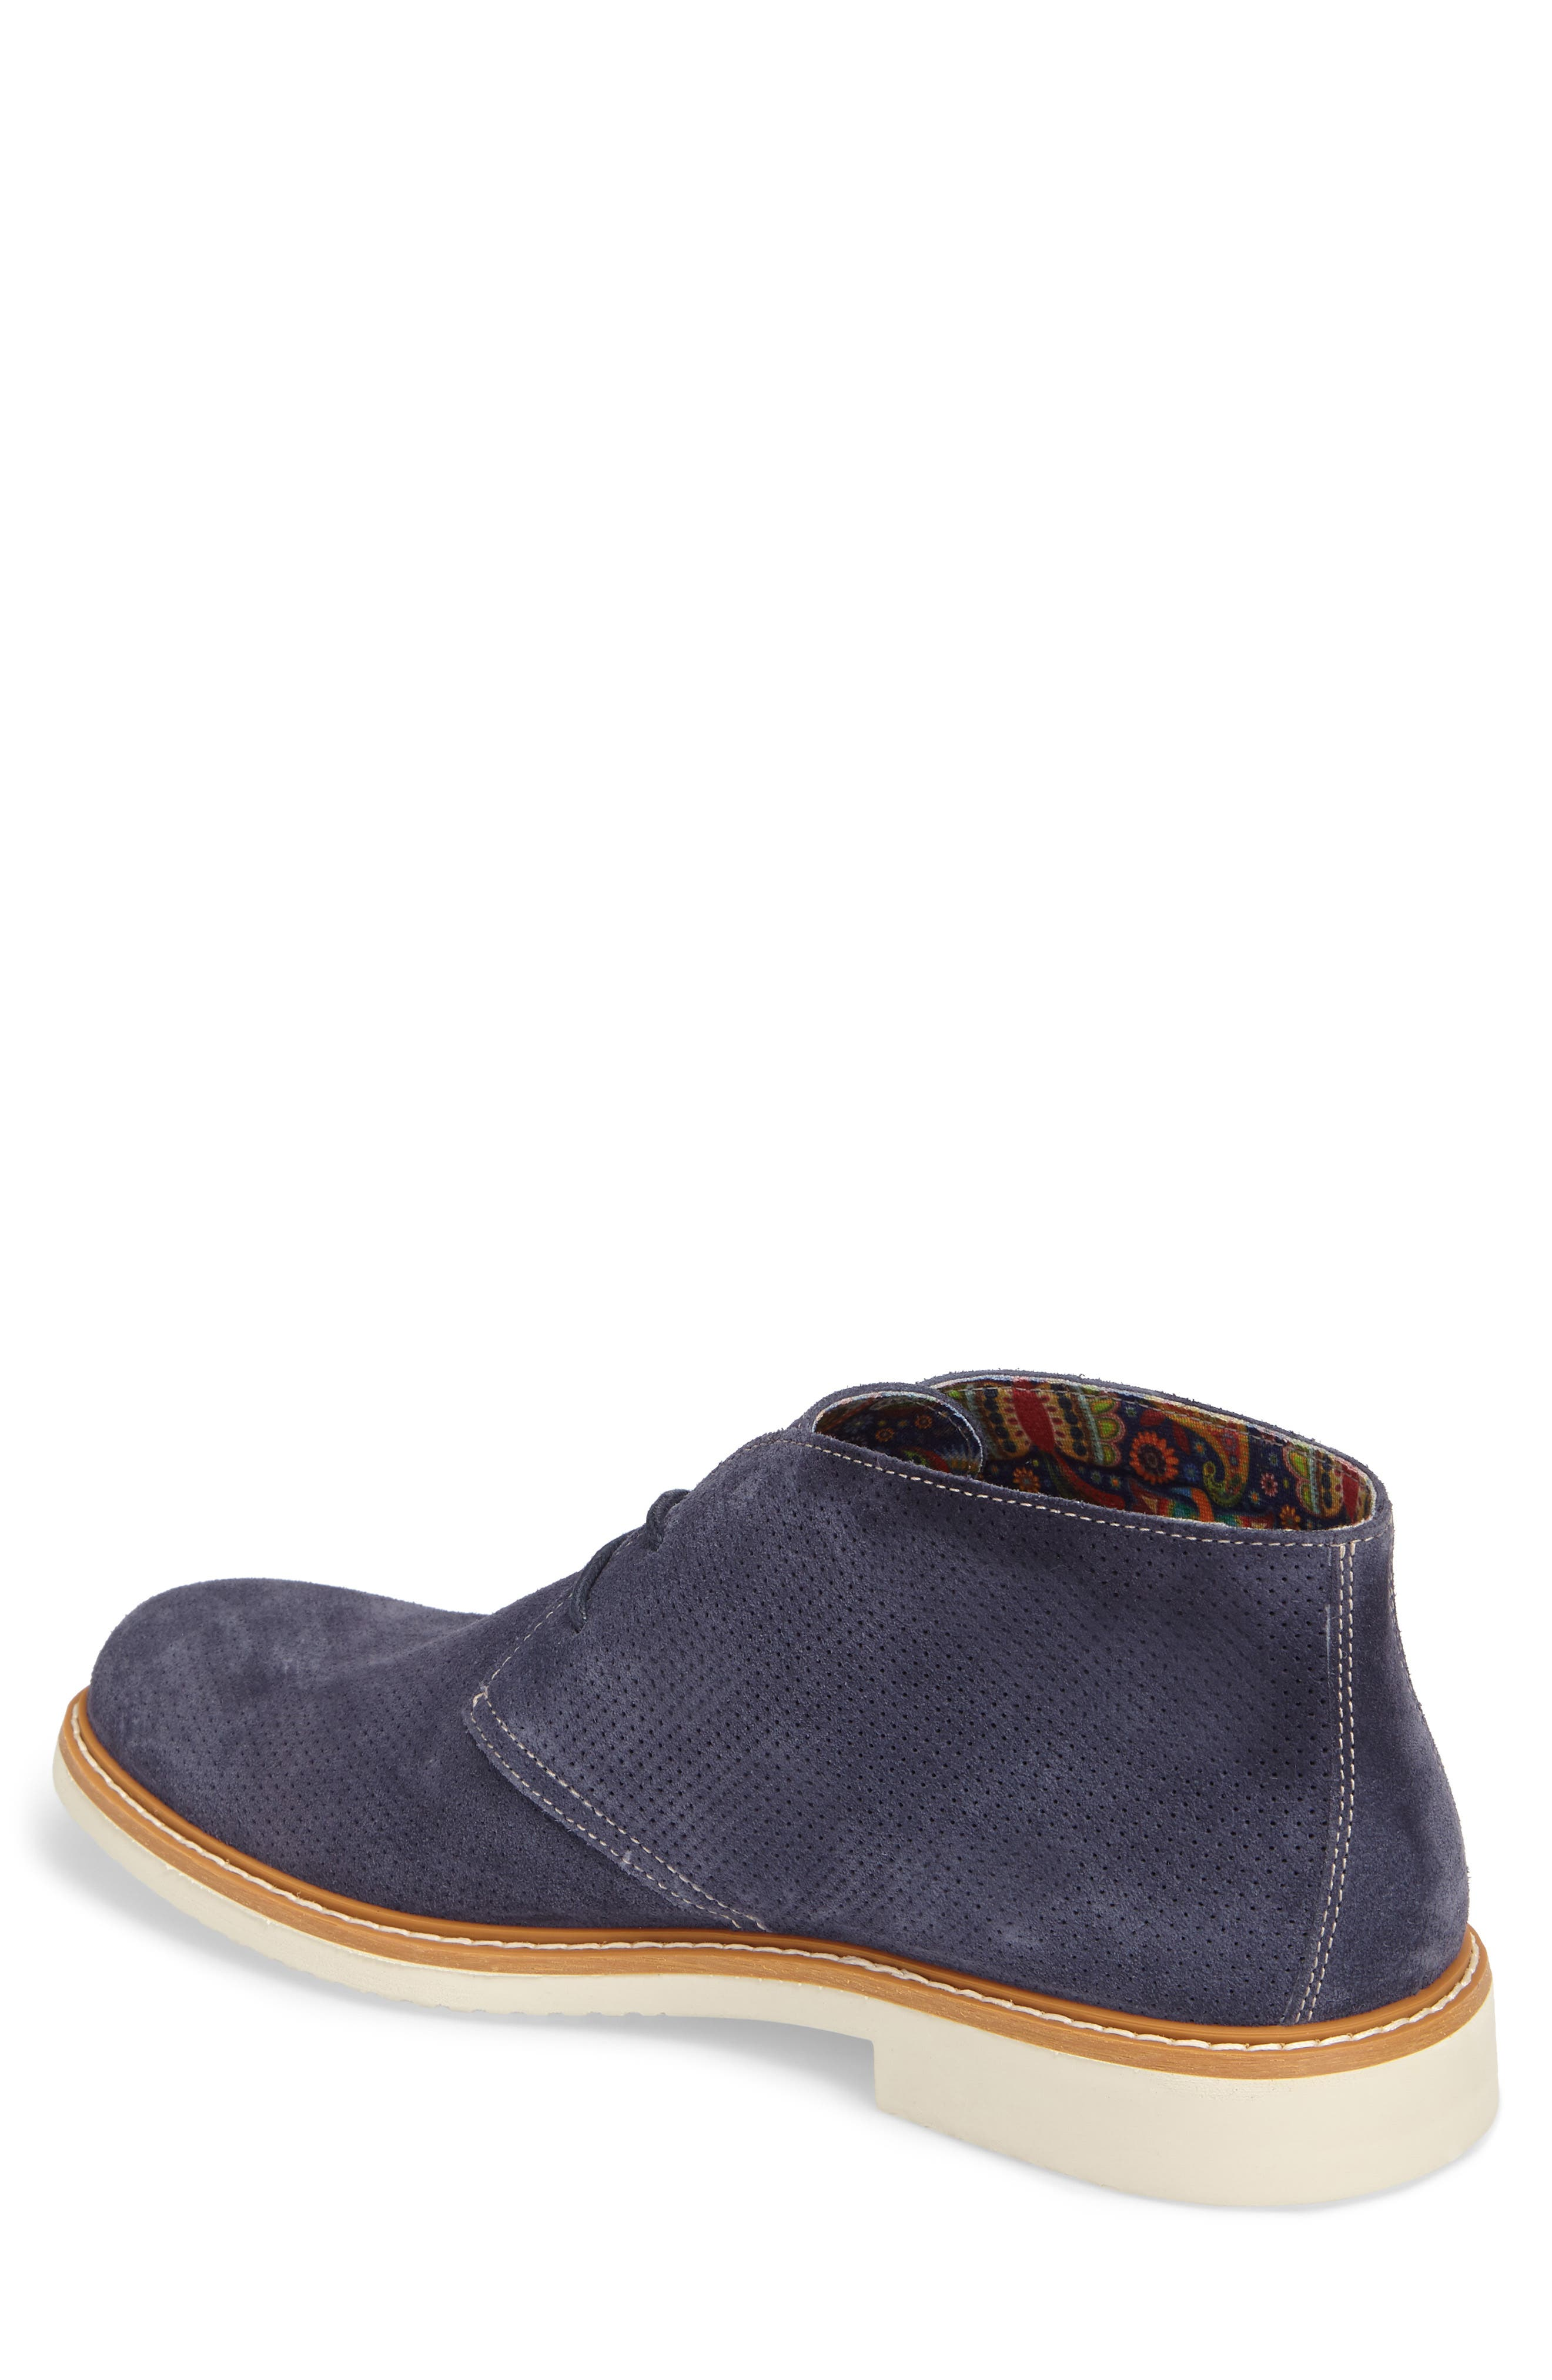 Bayside Perforated Chukka Boot,                             Alternate thumbnail 2, color,                             Blue Suede